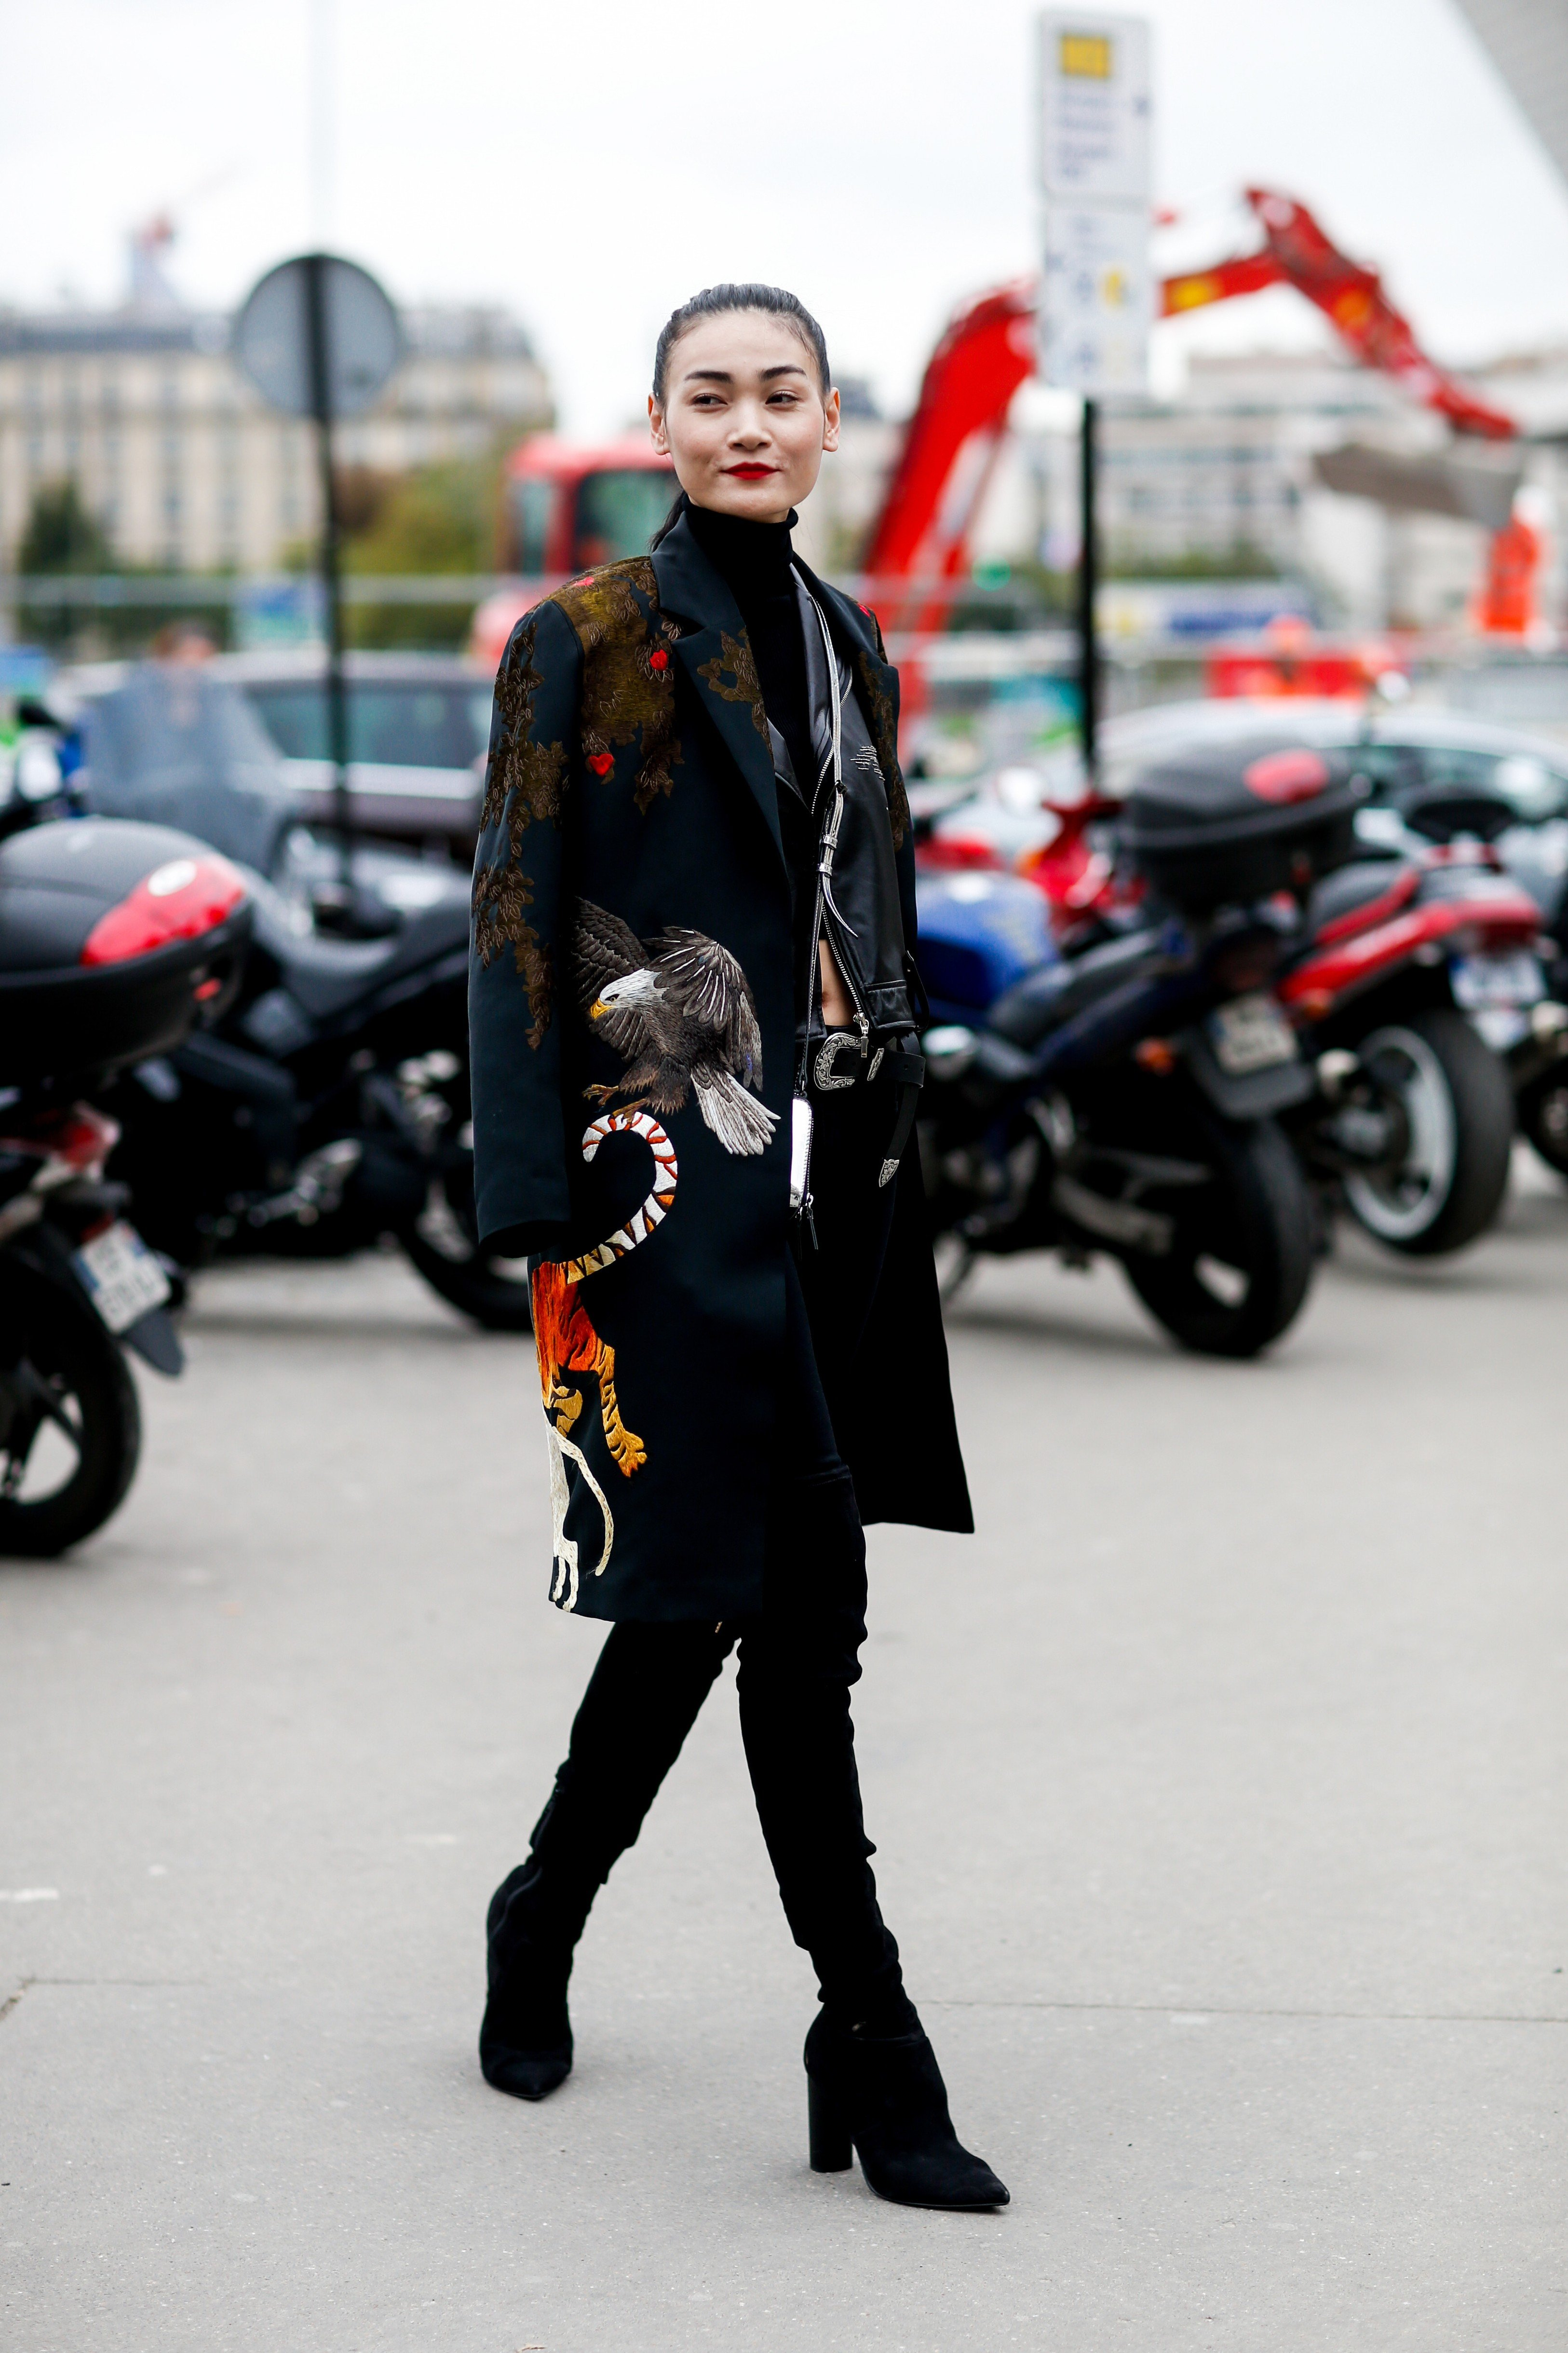 Street style, arriving at Giambattista Valli Spring-Summer 2018 show held at Boulevard Pereire, Paris, France, on October 2nd, 2017., Image: 352076255, License: Rights-managed, Restrictions: , Model Release: no, Credit line: Profimedia, Abaca